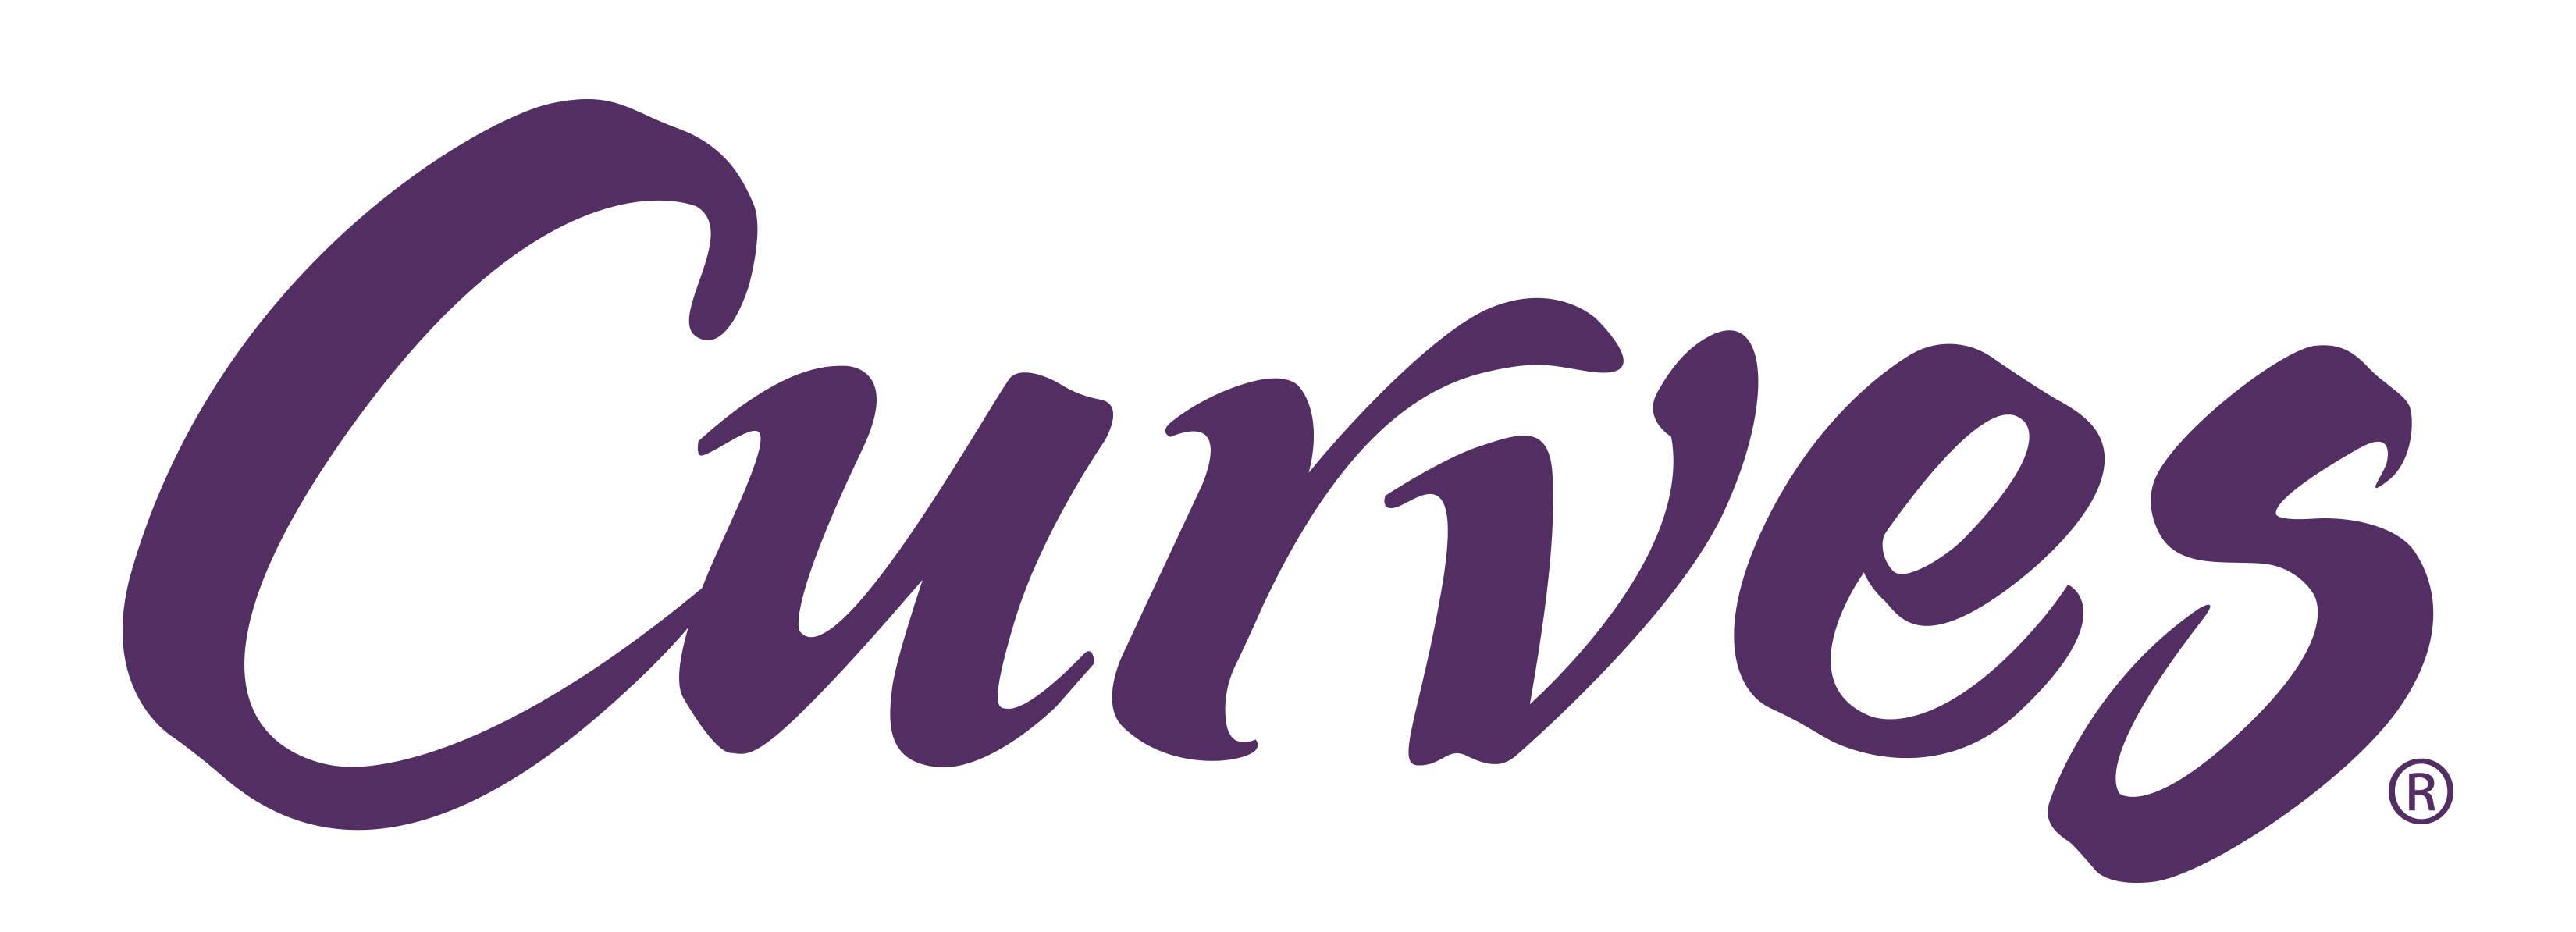 Curves_Logo_HR OFFICIAL